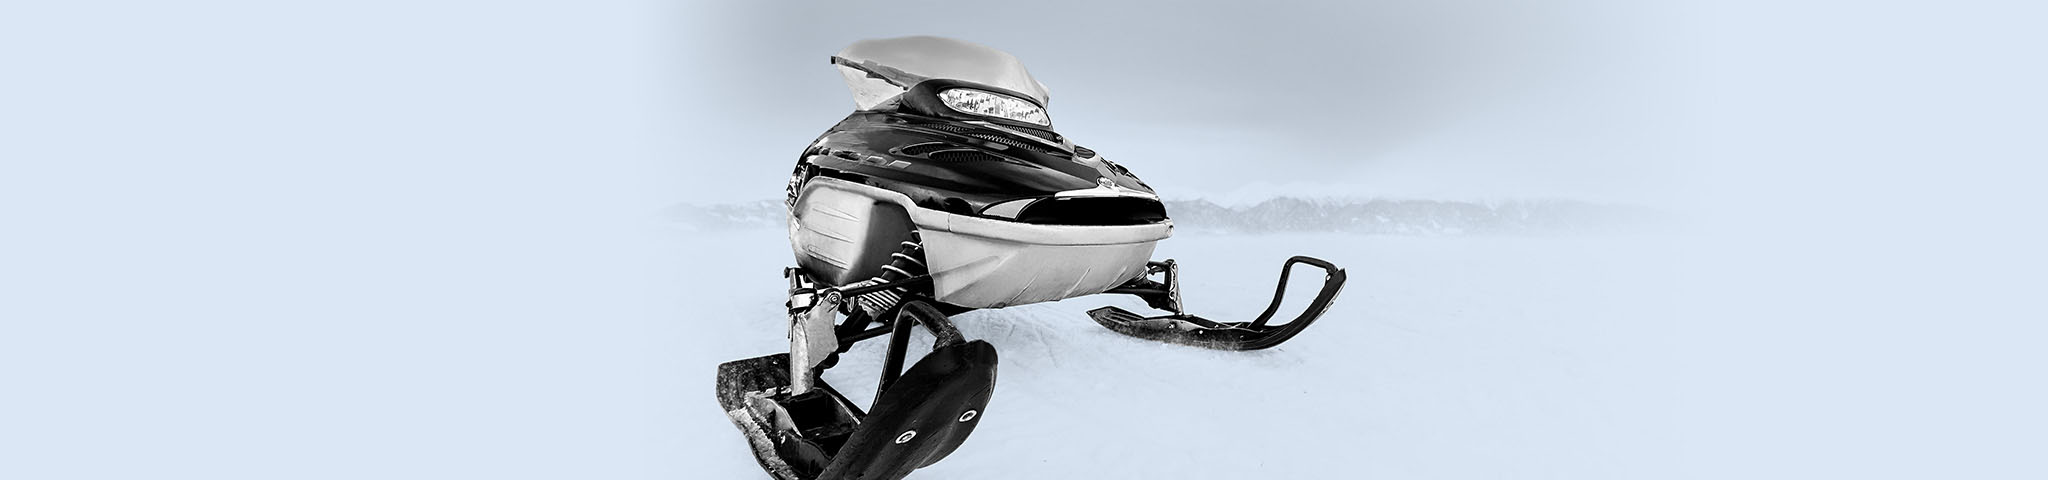 Snowmobile, ski-doo insurance